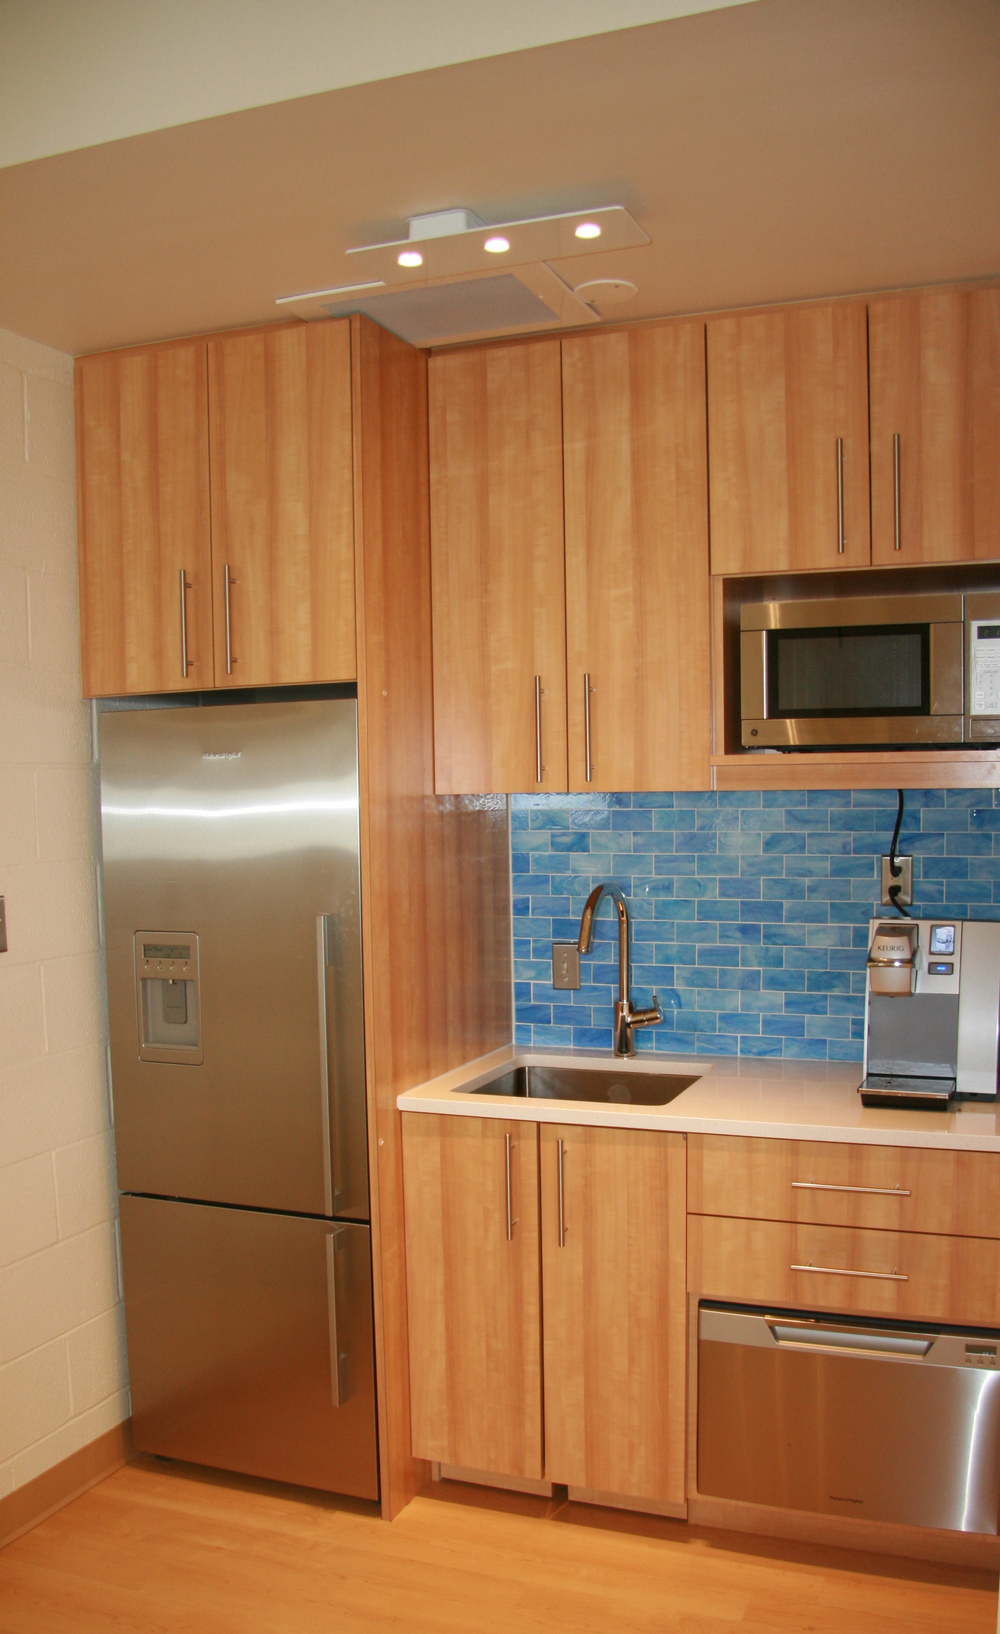 Waterworks backsplash tile, Silestone countertop, and stainless steel appliances make the kitchen a favorite spot for faculty and parents.